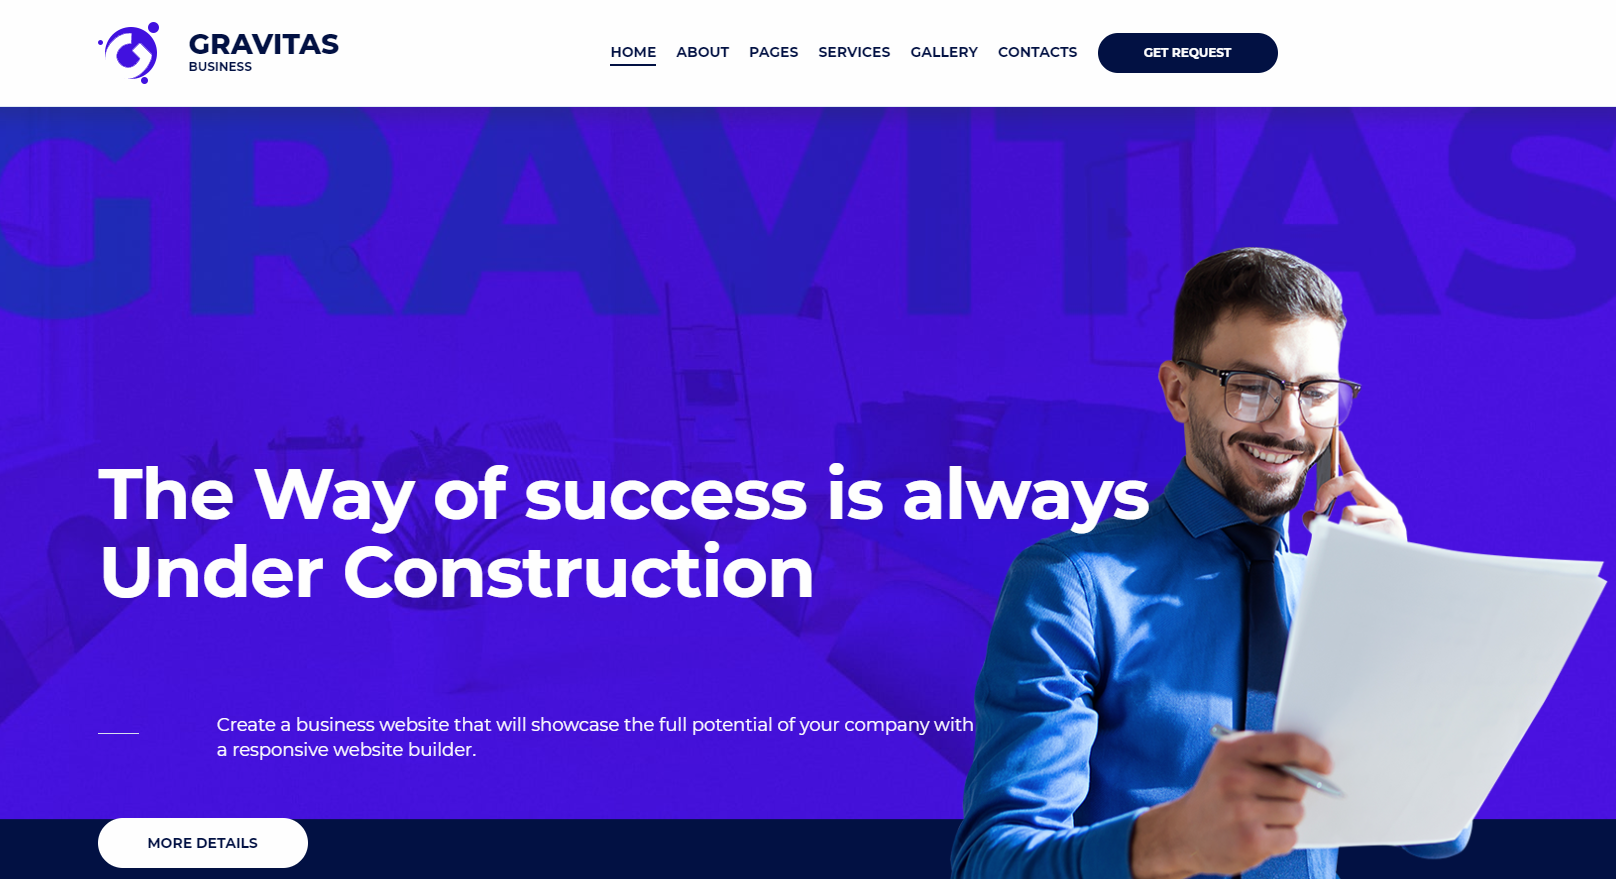 Top 15 Business Themes And Templates To Build Your First Website With No Coding Skills